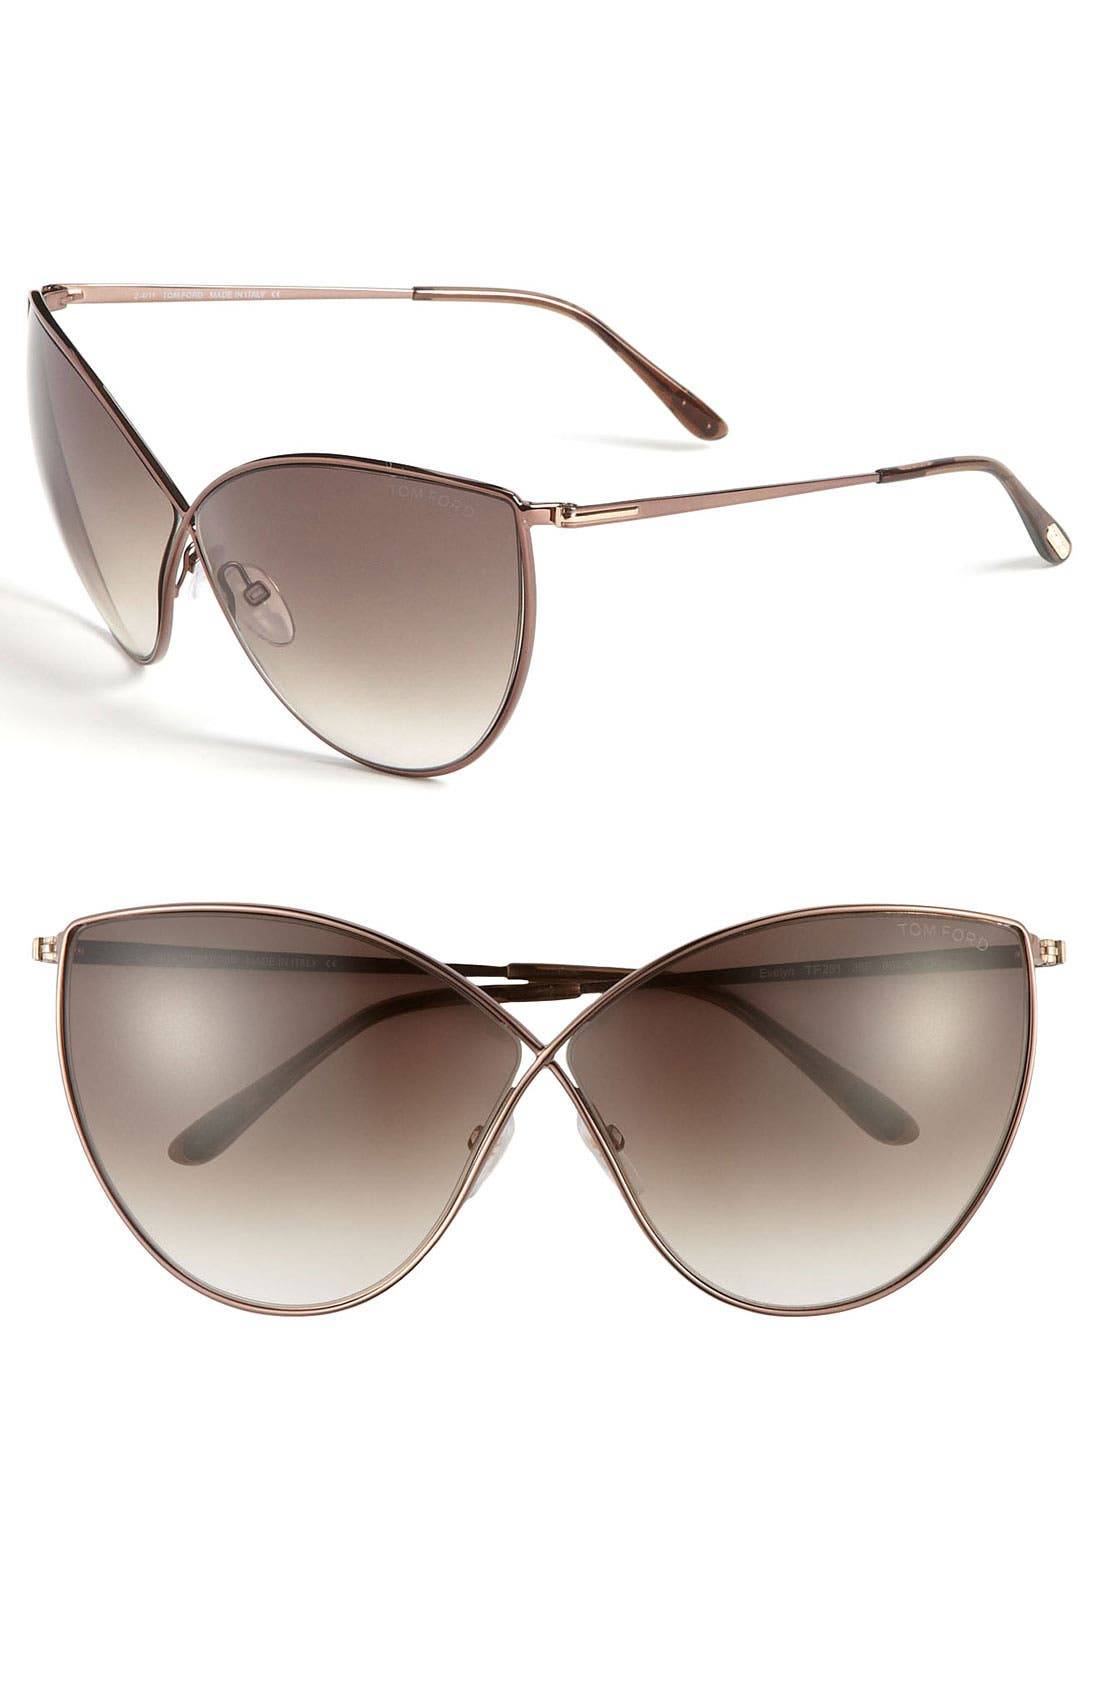 Main Image - Tom Ford 'Evelyn' 66mm Sunglasses